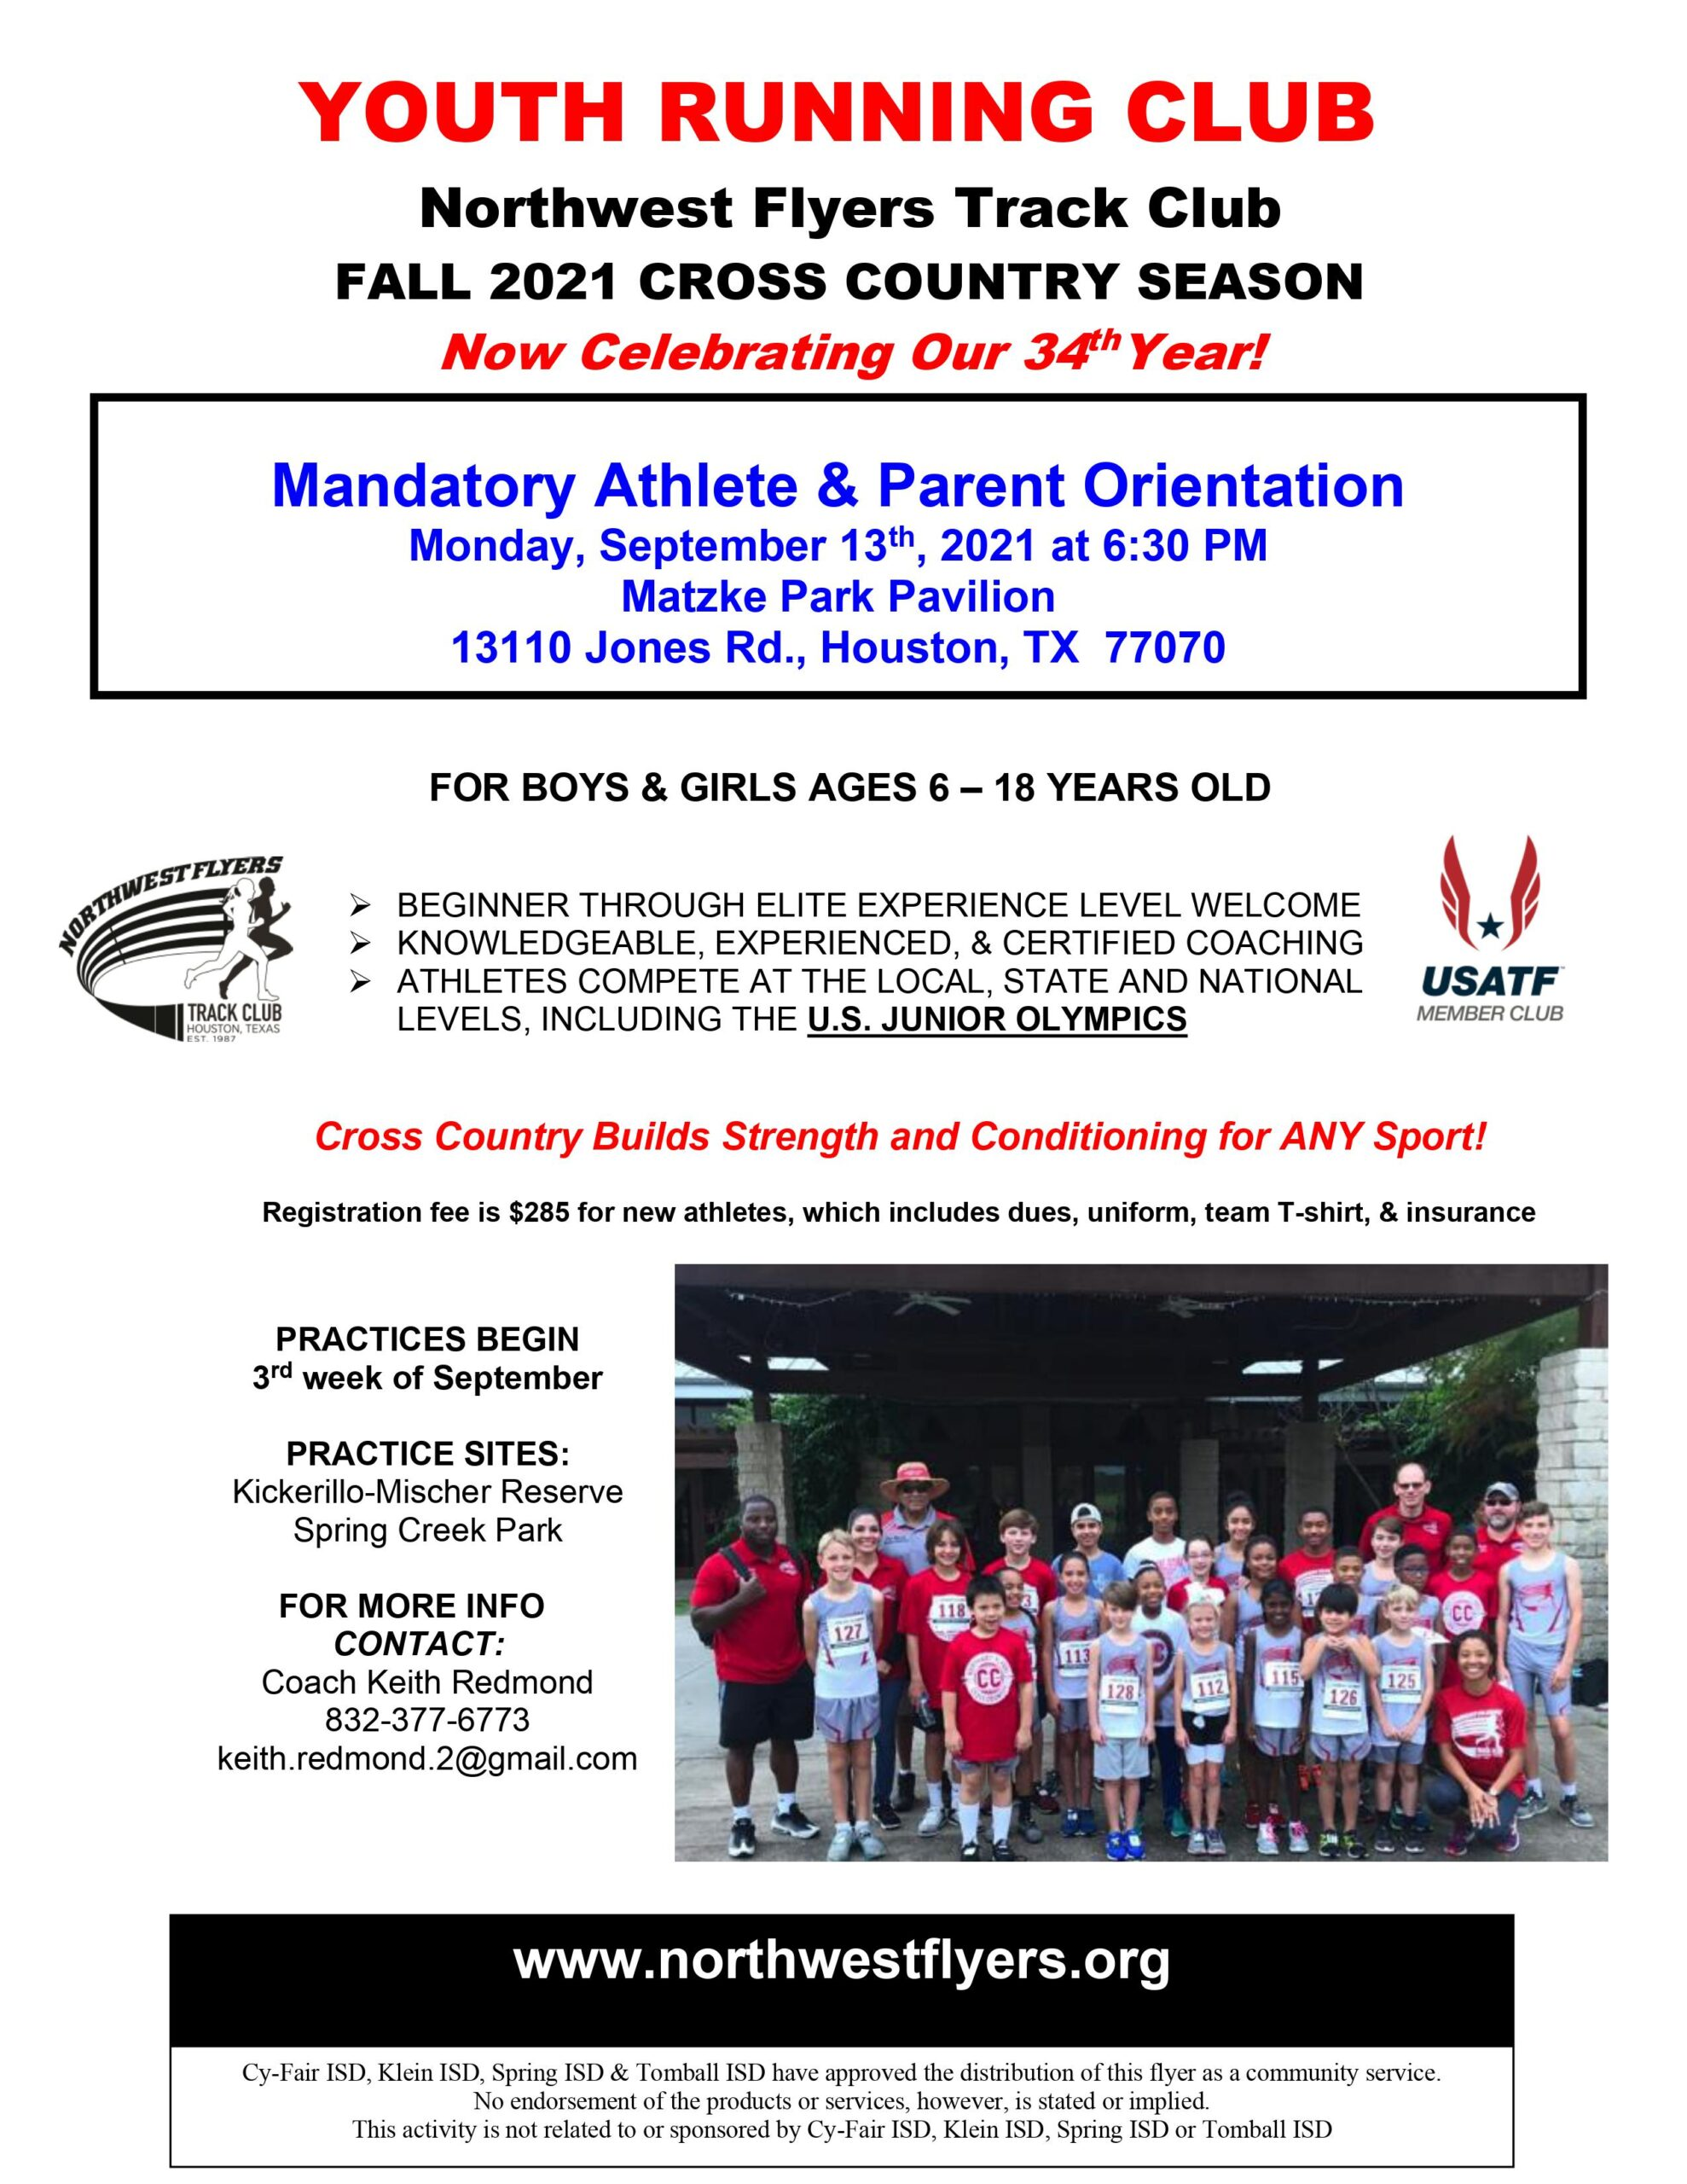 UPDATE: 2021 Cross Country Orientation